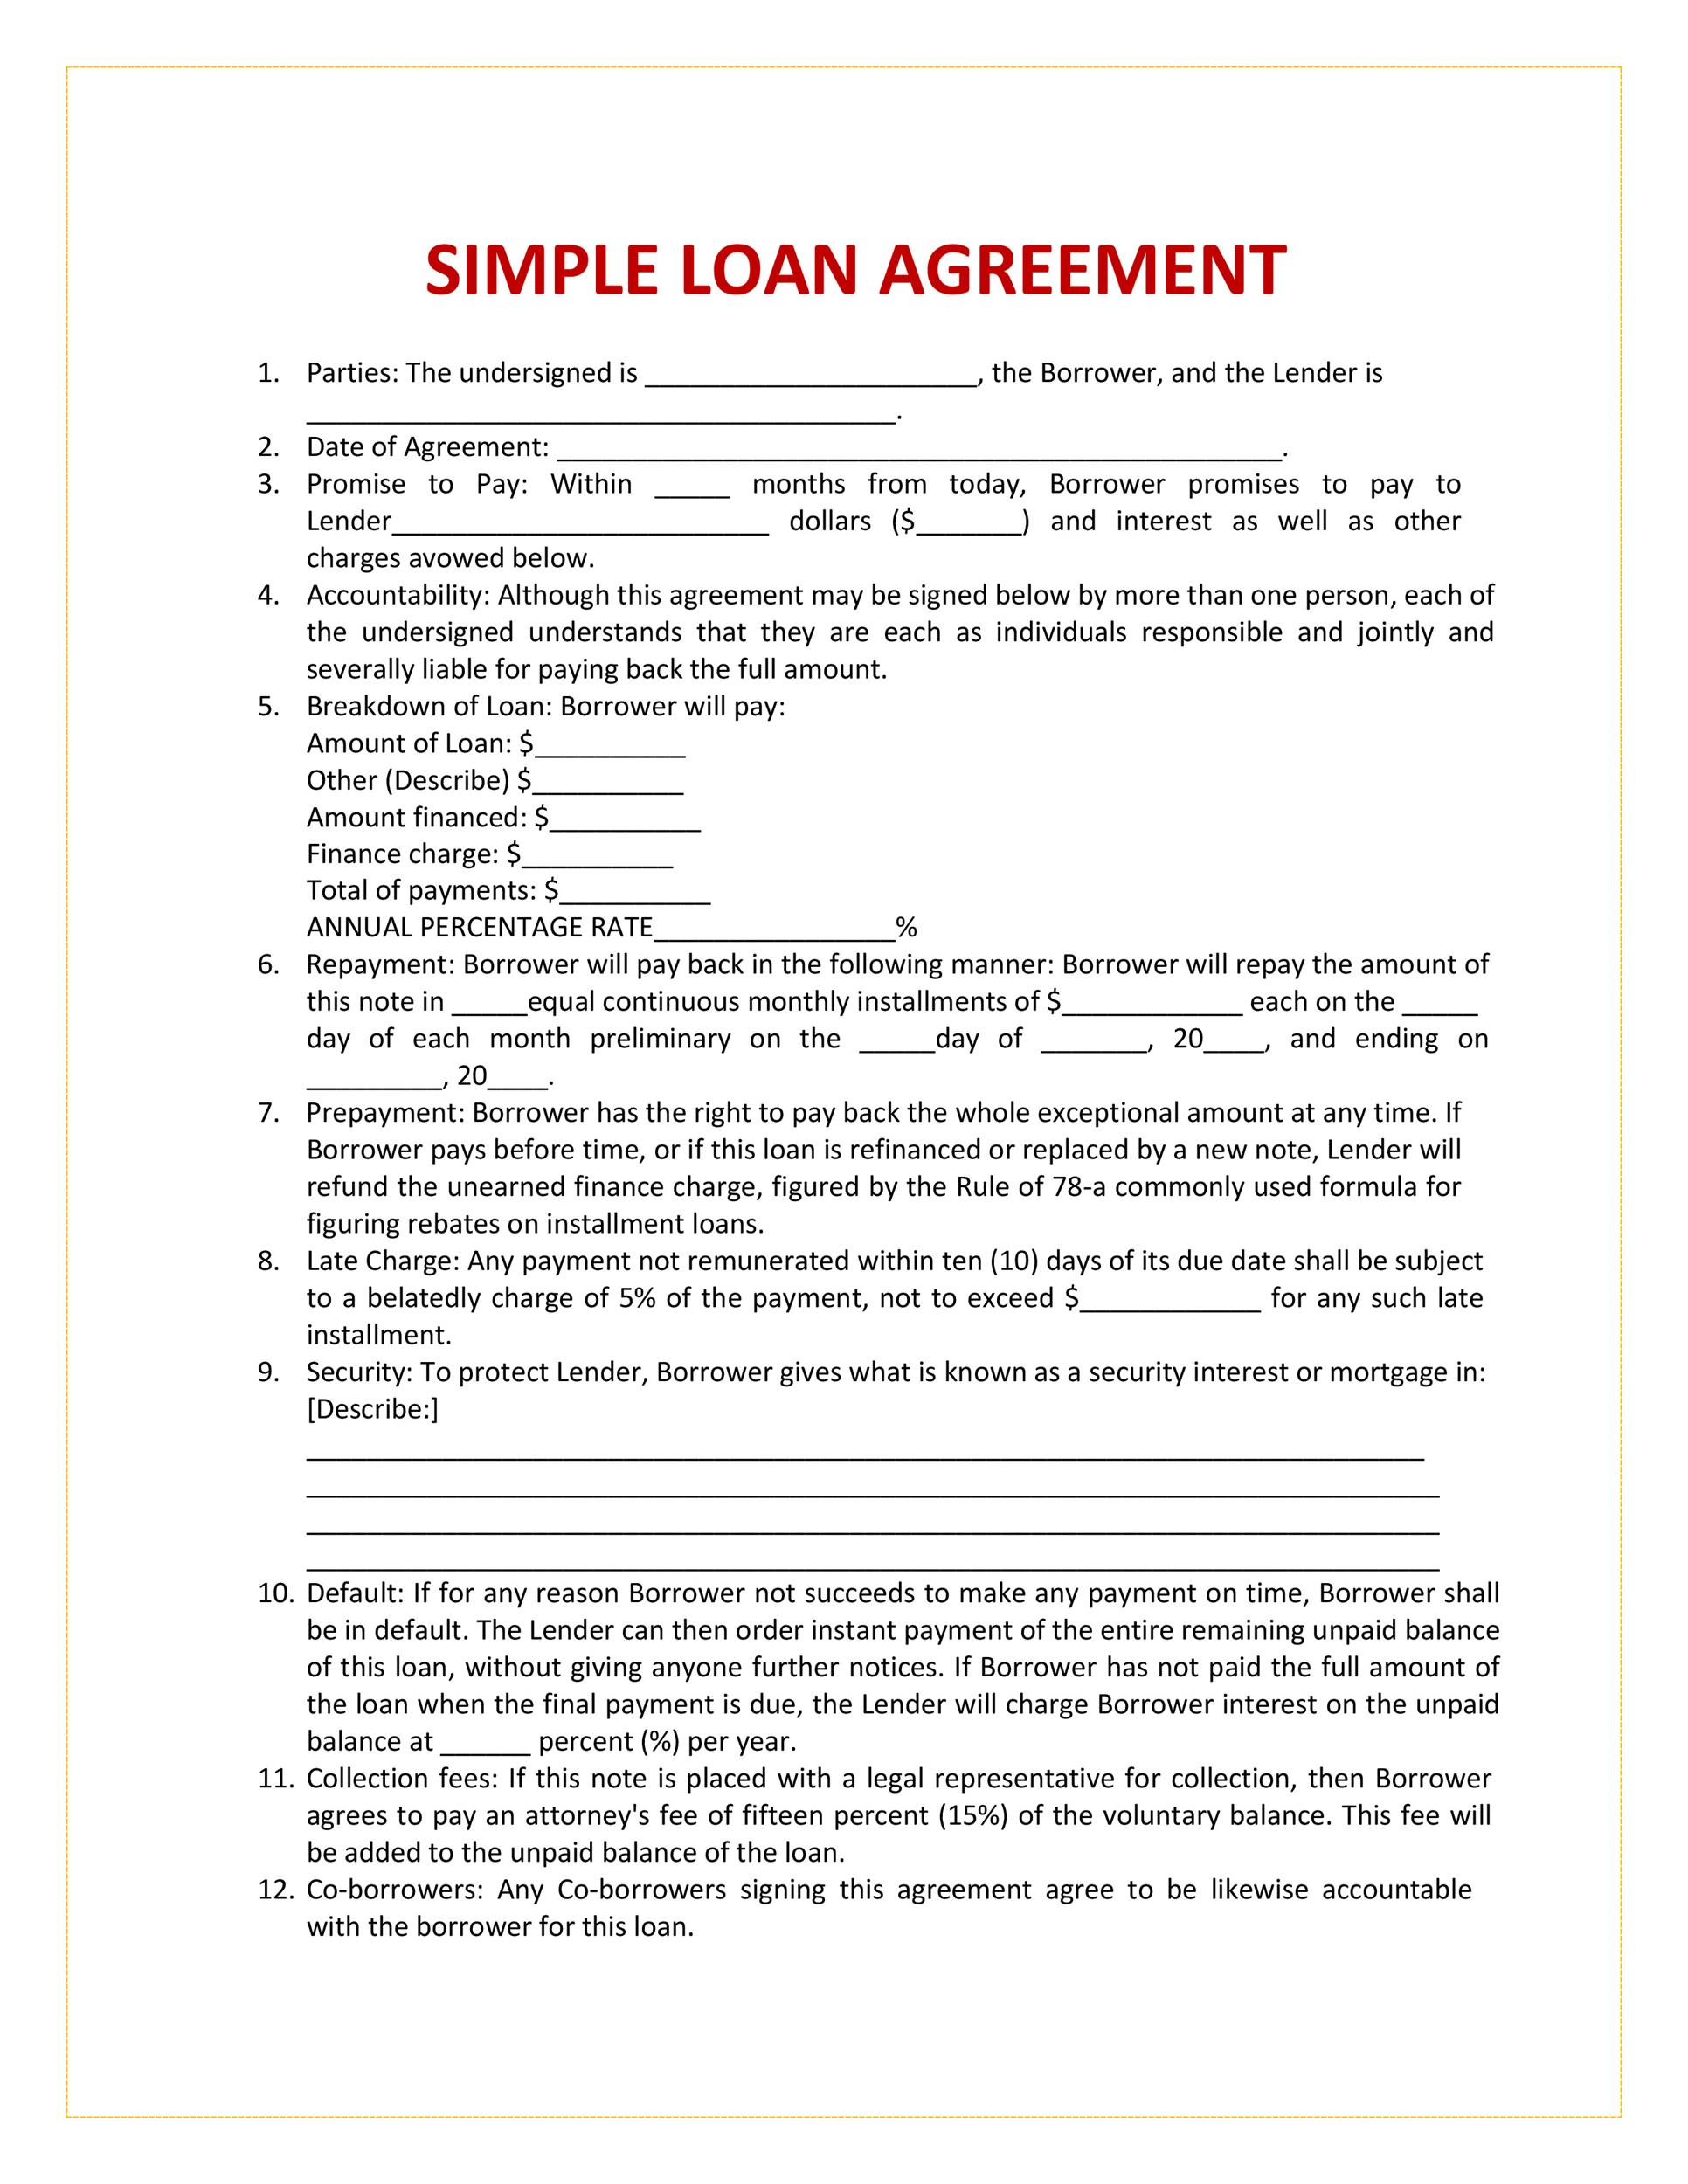 Loan Agreement Template To Pin On Pinterest